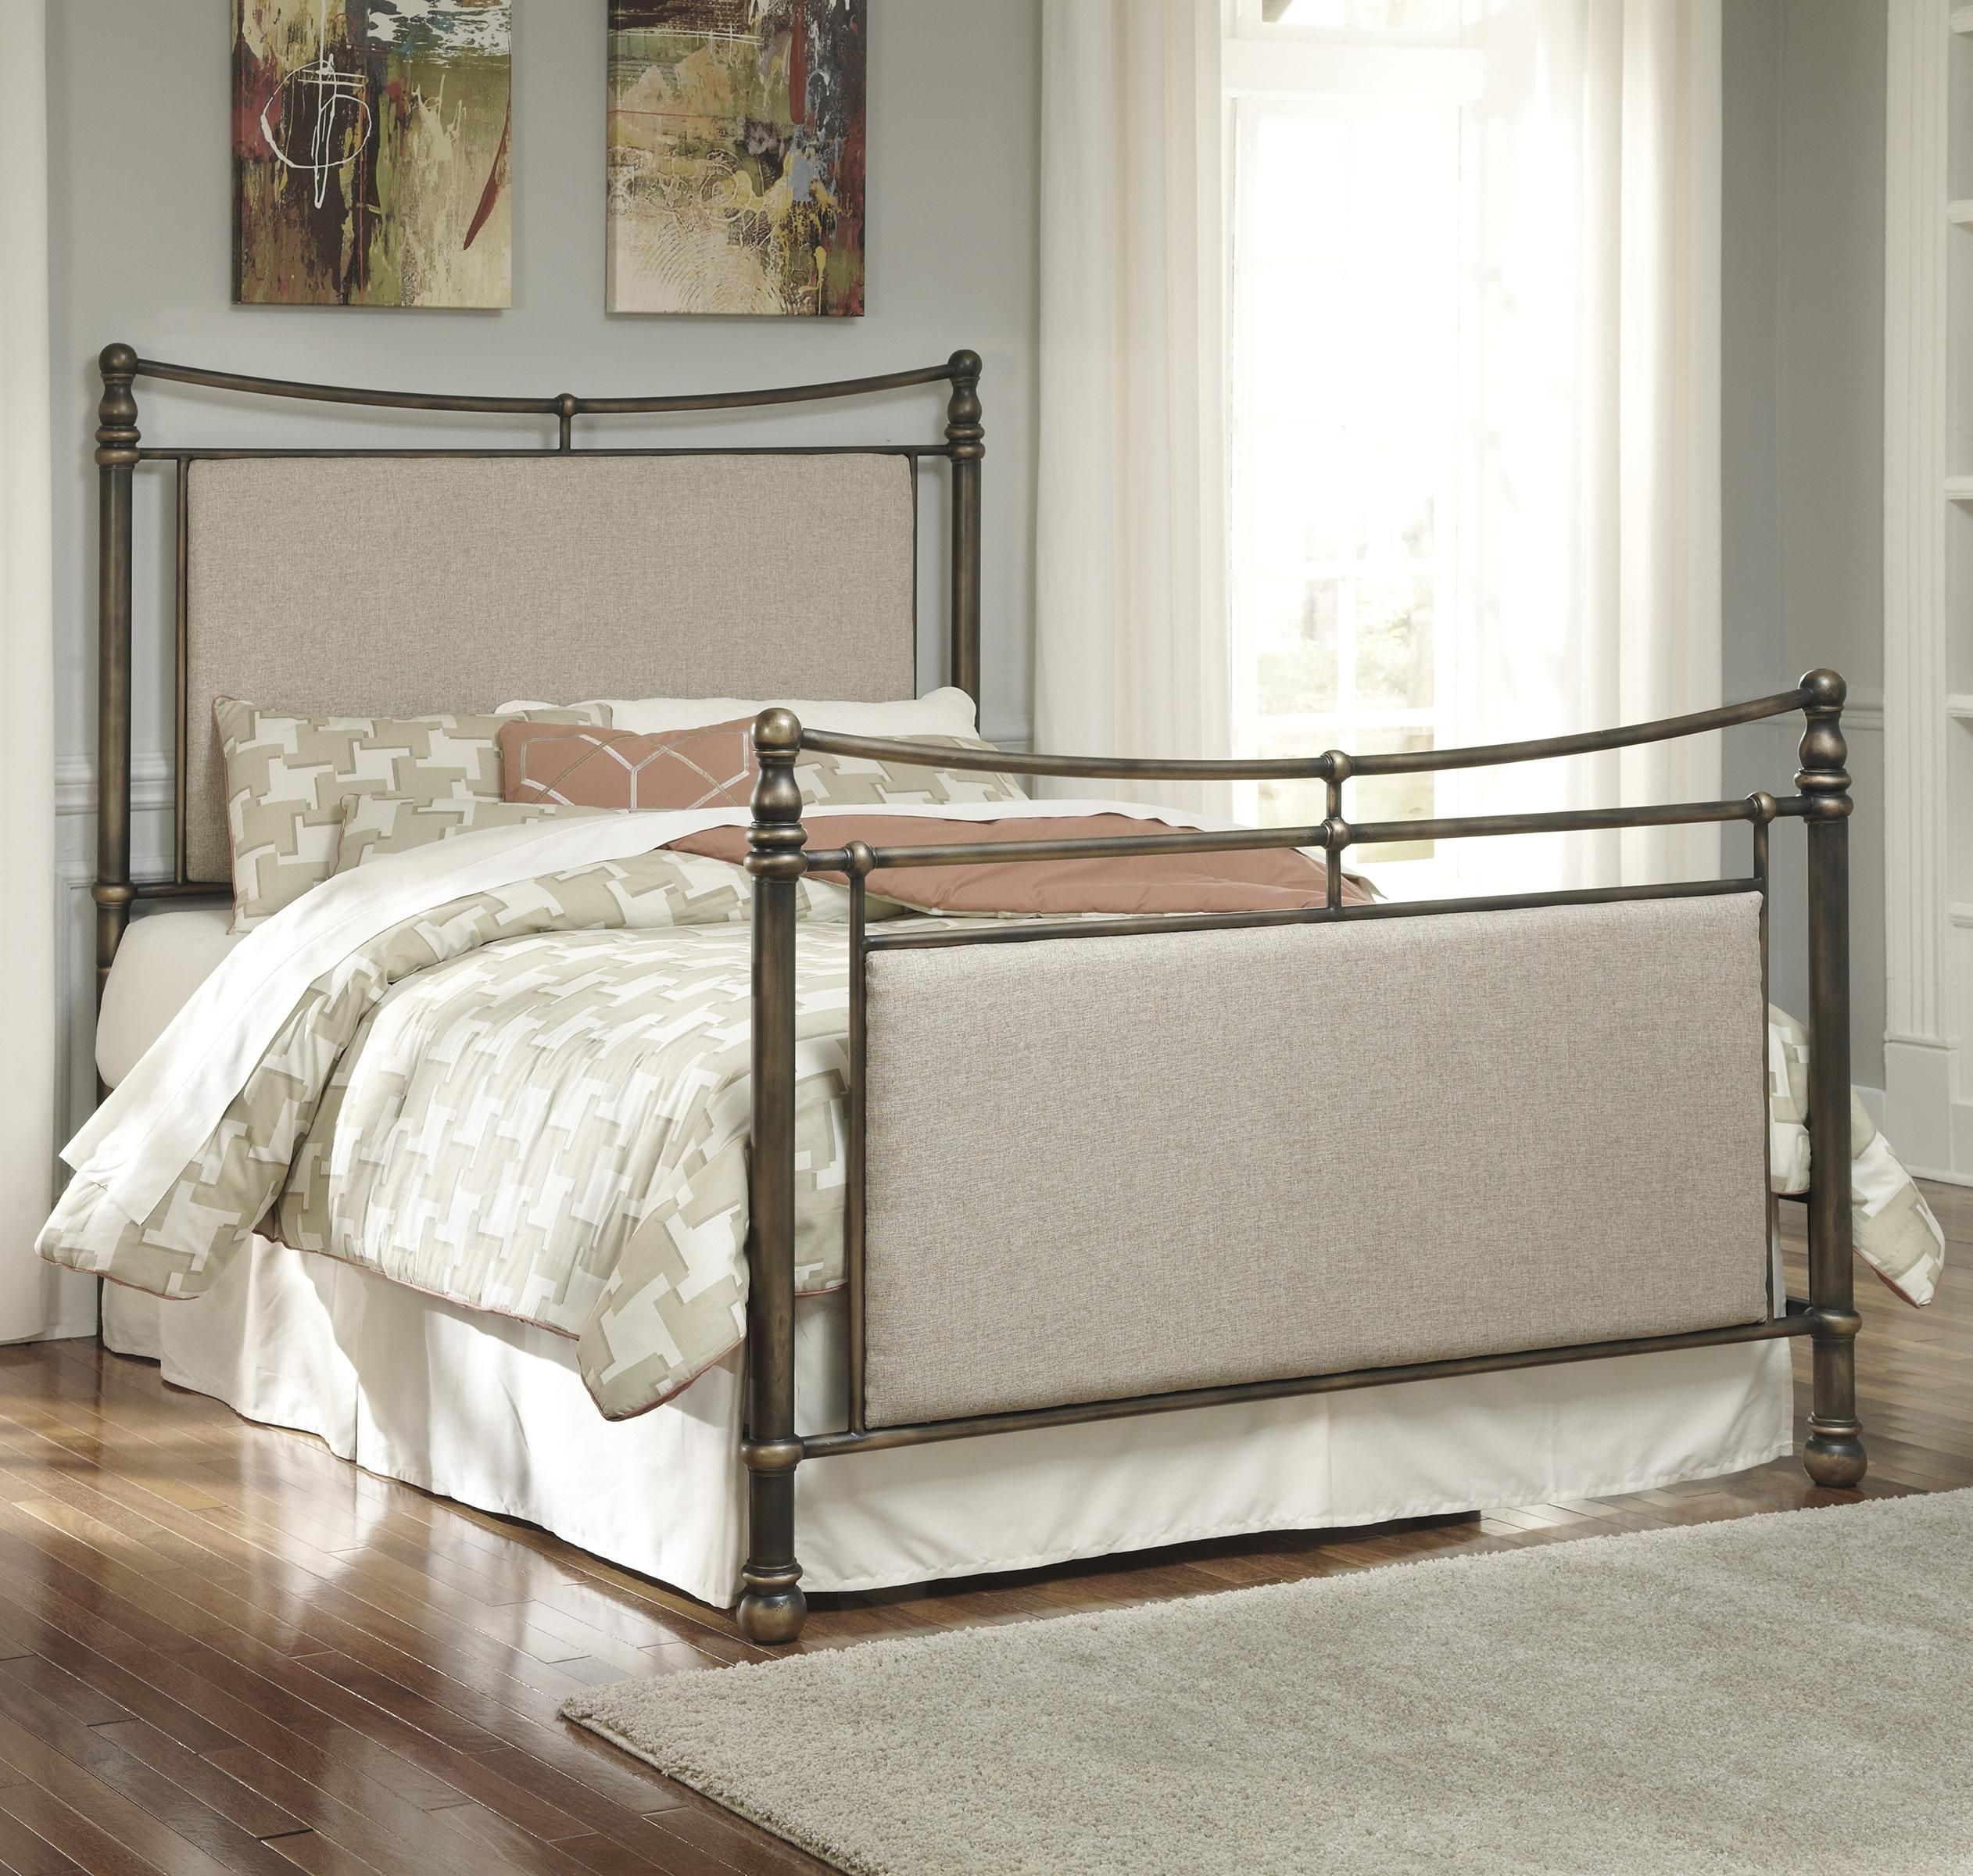 The Upholstered Panels On Headboard And Footboard Of This Metal Bed Add Luxurious Comfort As They Update Its Style Look Will Contrast Nicely With